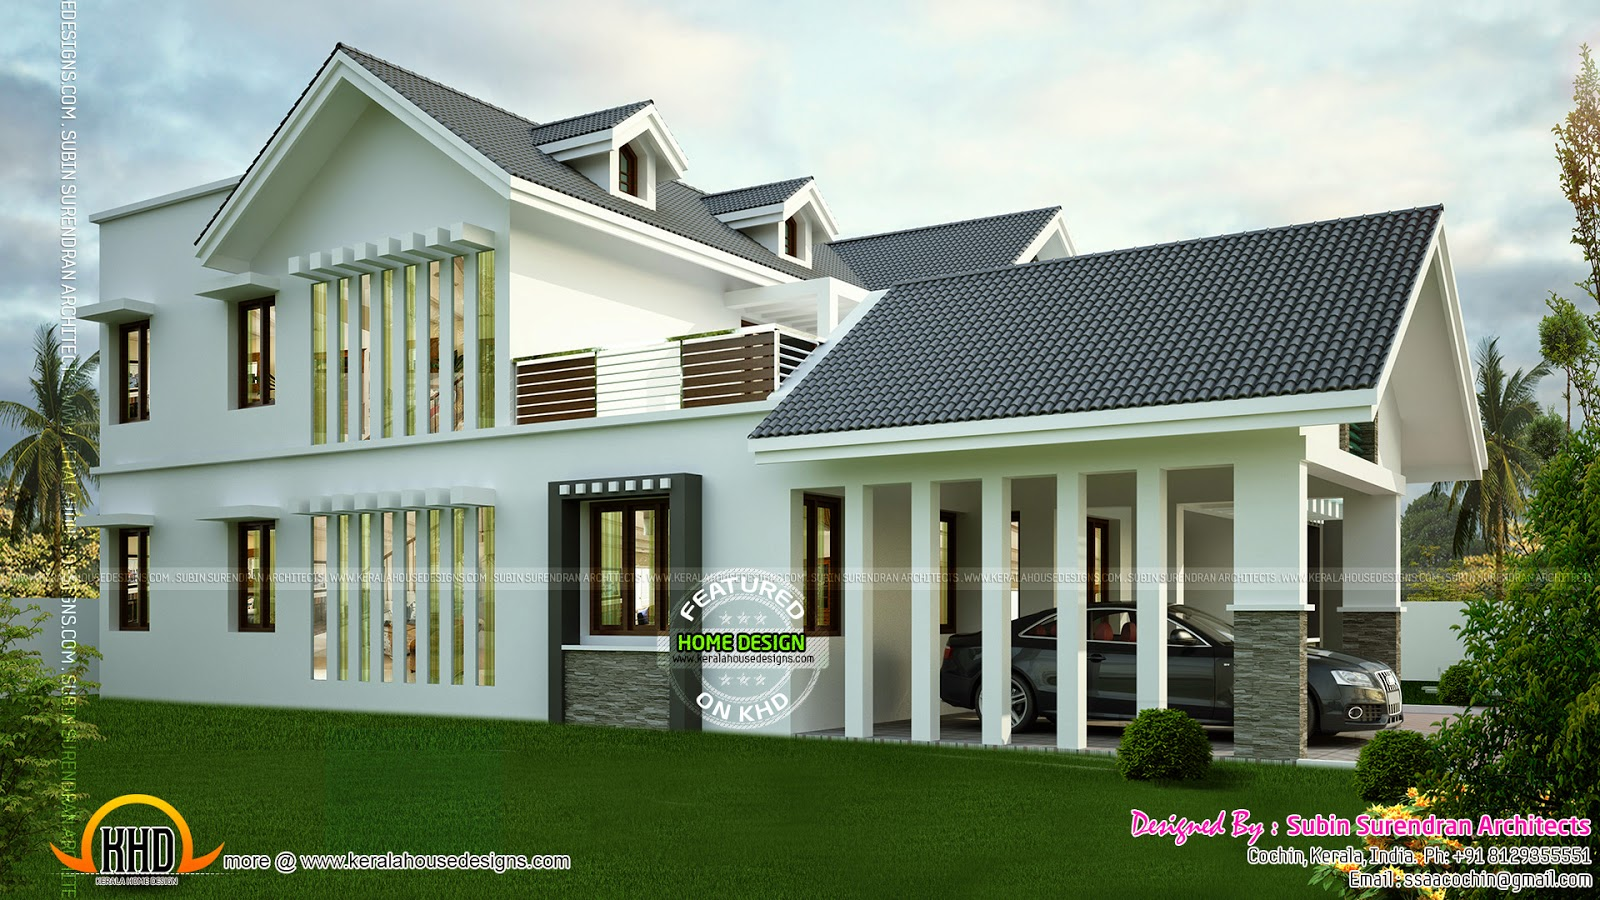 Modern sloping roof house with dormer windows kerala for Side sloping house designs